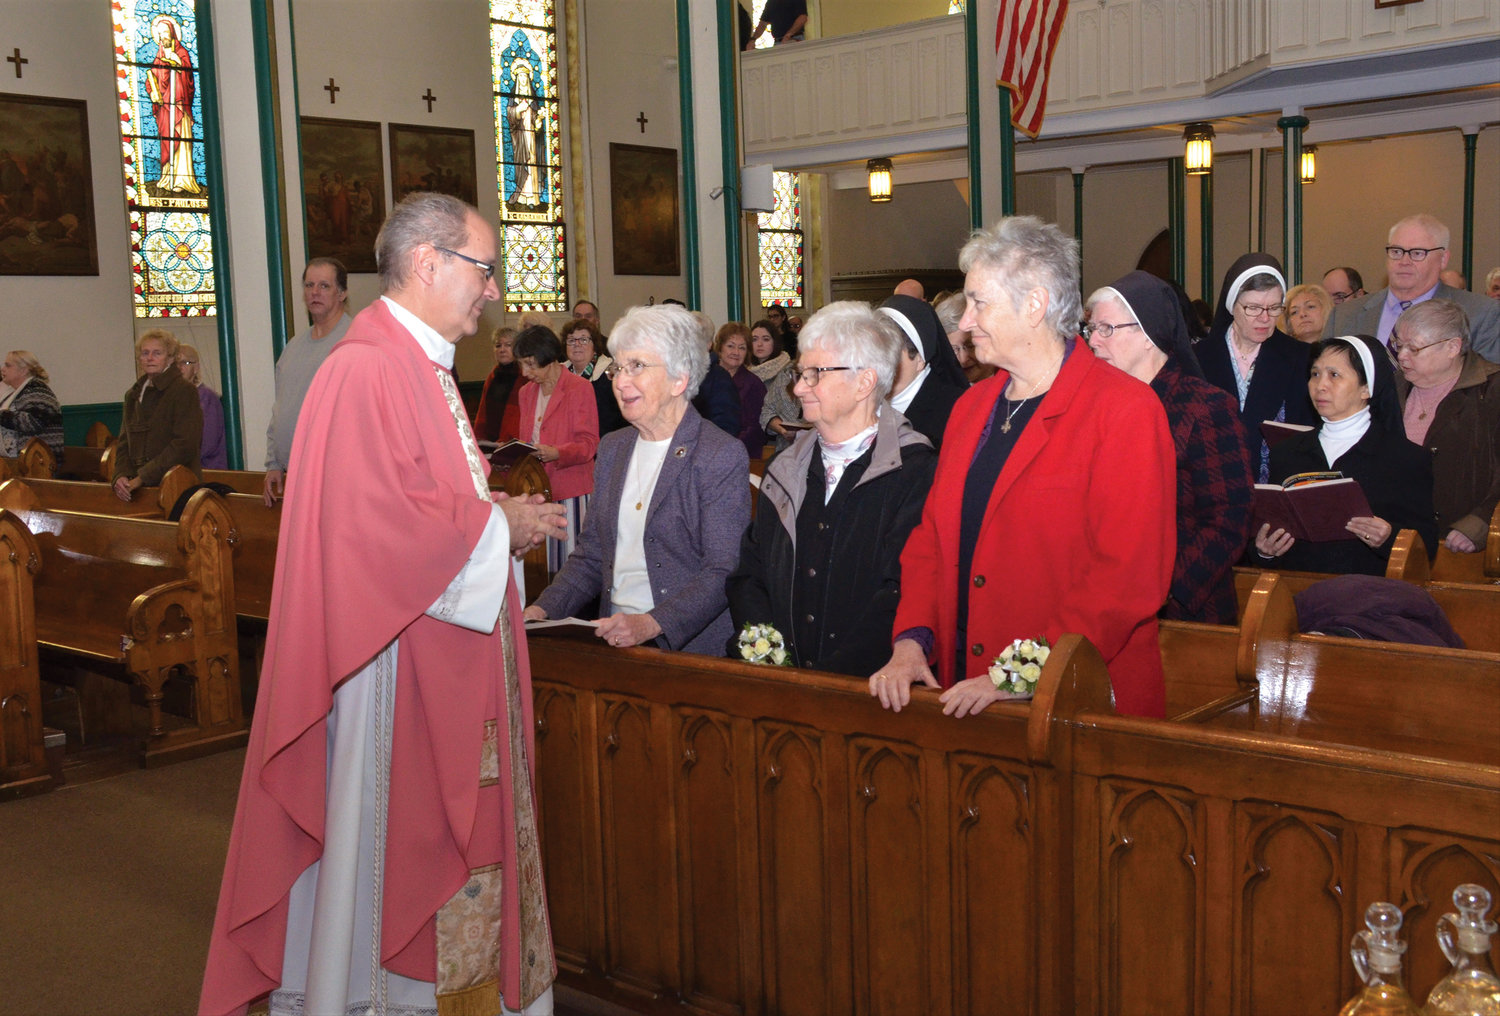 Father William Scafidi, pastor of St. Mary's-St. Peter's parish, greets Sister Mary Feehan, O.S.B., prioress of the Benedictine Sisters; Sister Gabrielle Keenen, O.S.B., and Sister Dorothy Huggard, O.S.B.